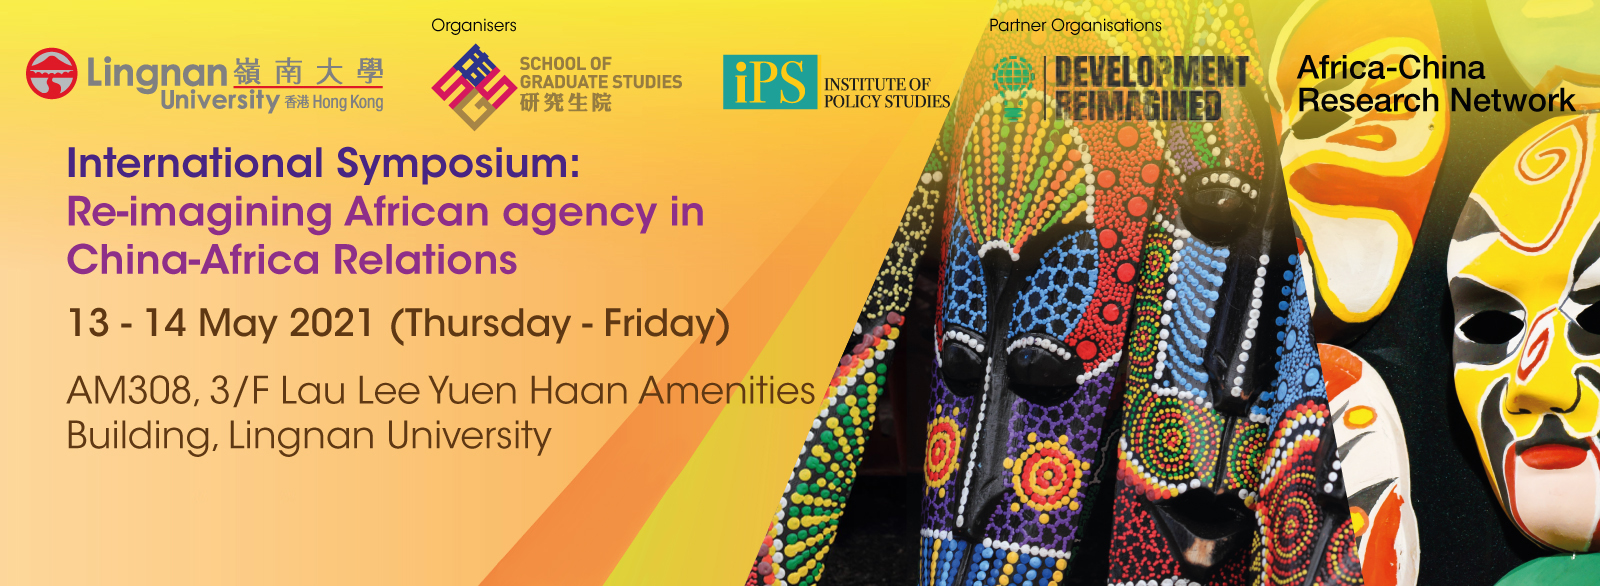 International Symposium: Re-imagining African agency in China-Africa Relations